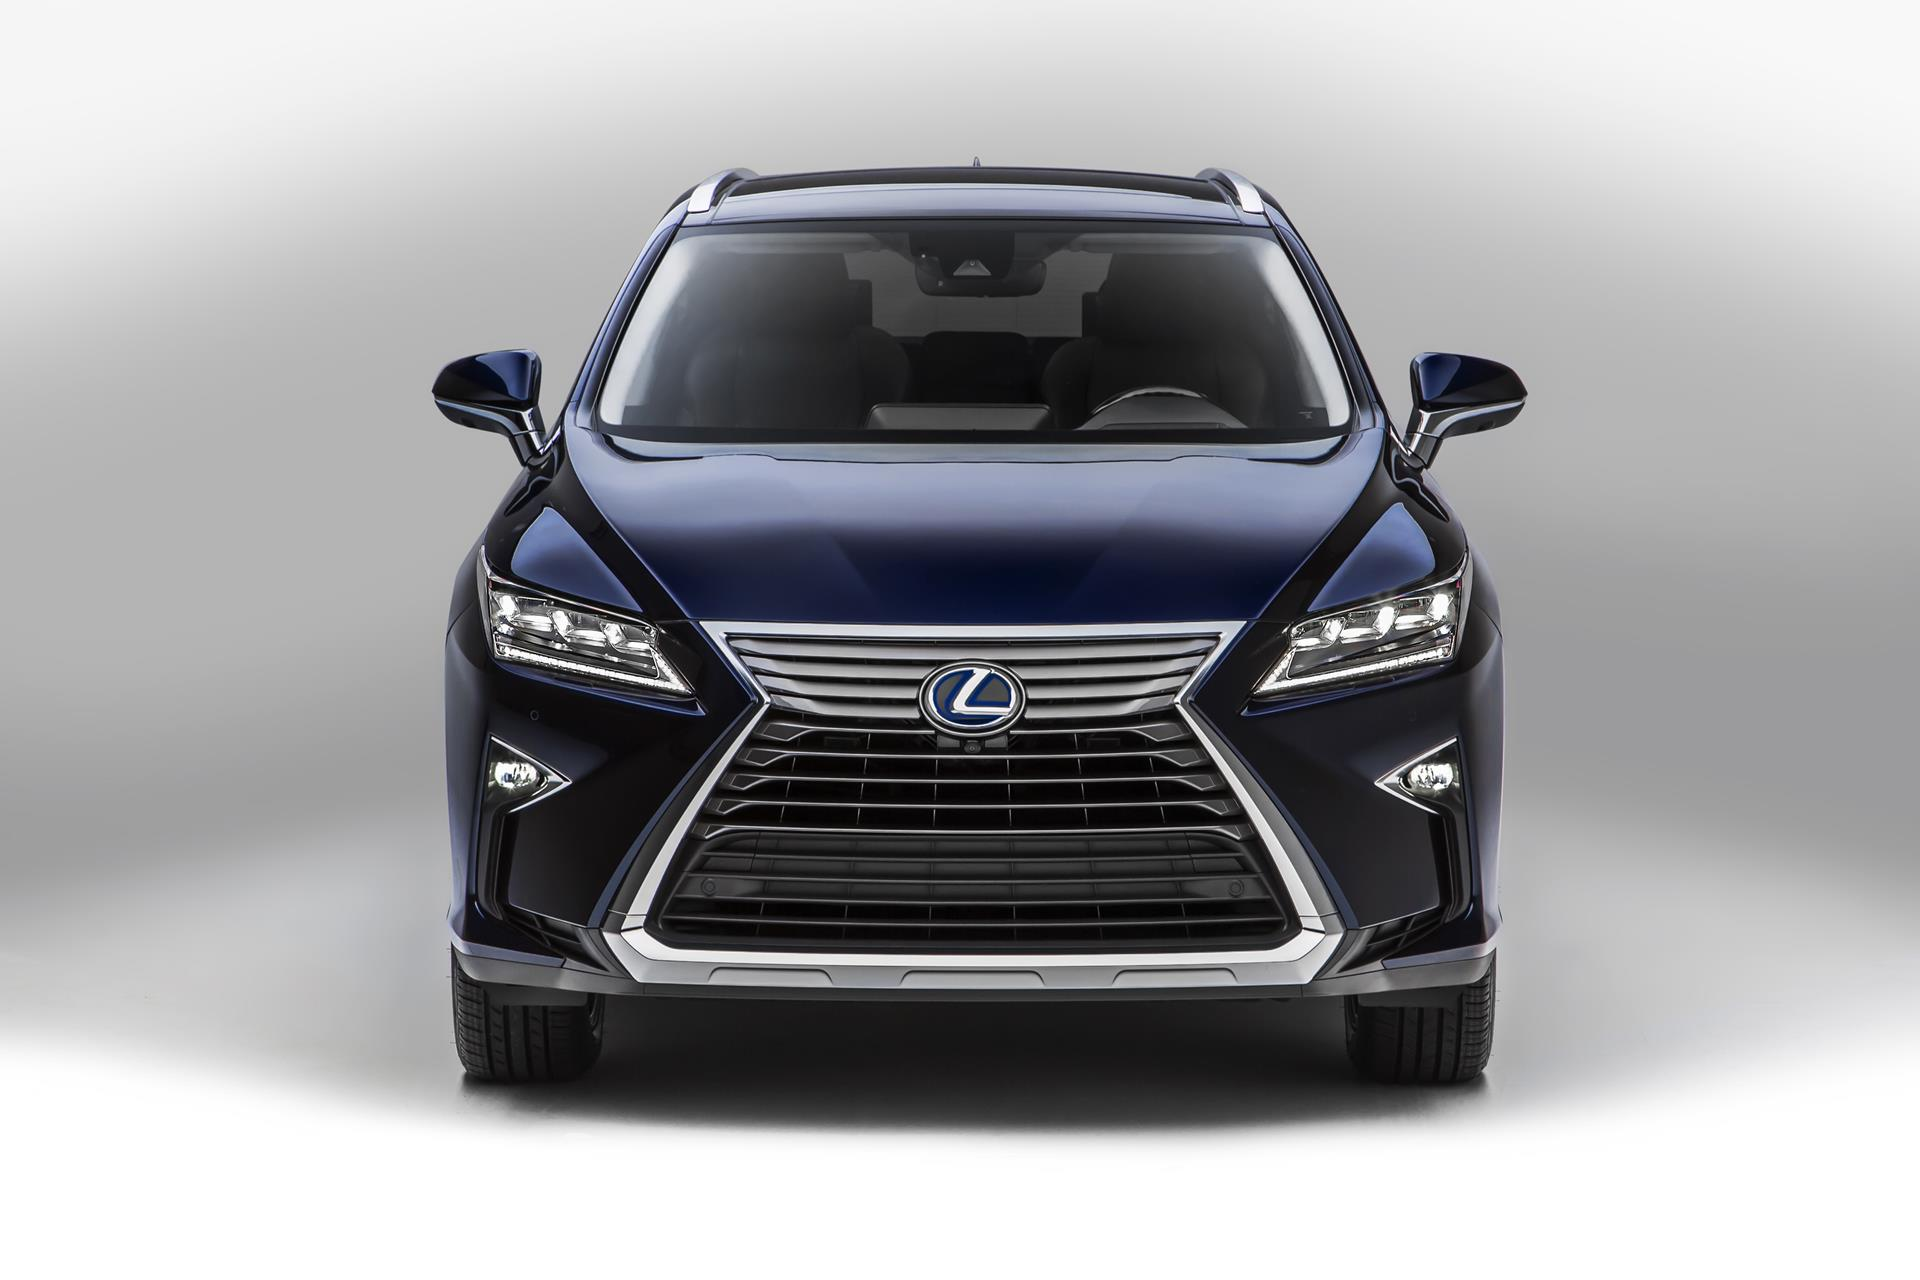 2016 lexus rx 450h news and information. Black Bedroom Furniture Sets. Home Design Ideas